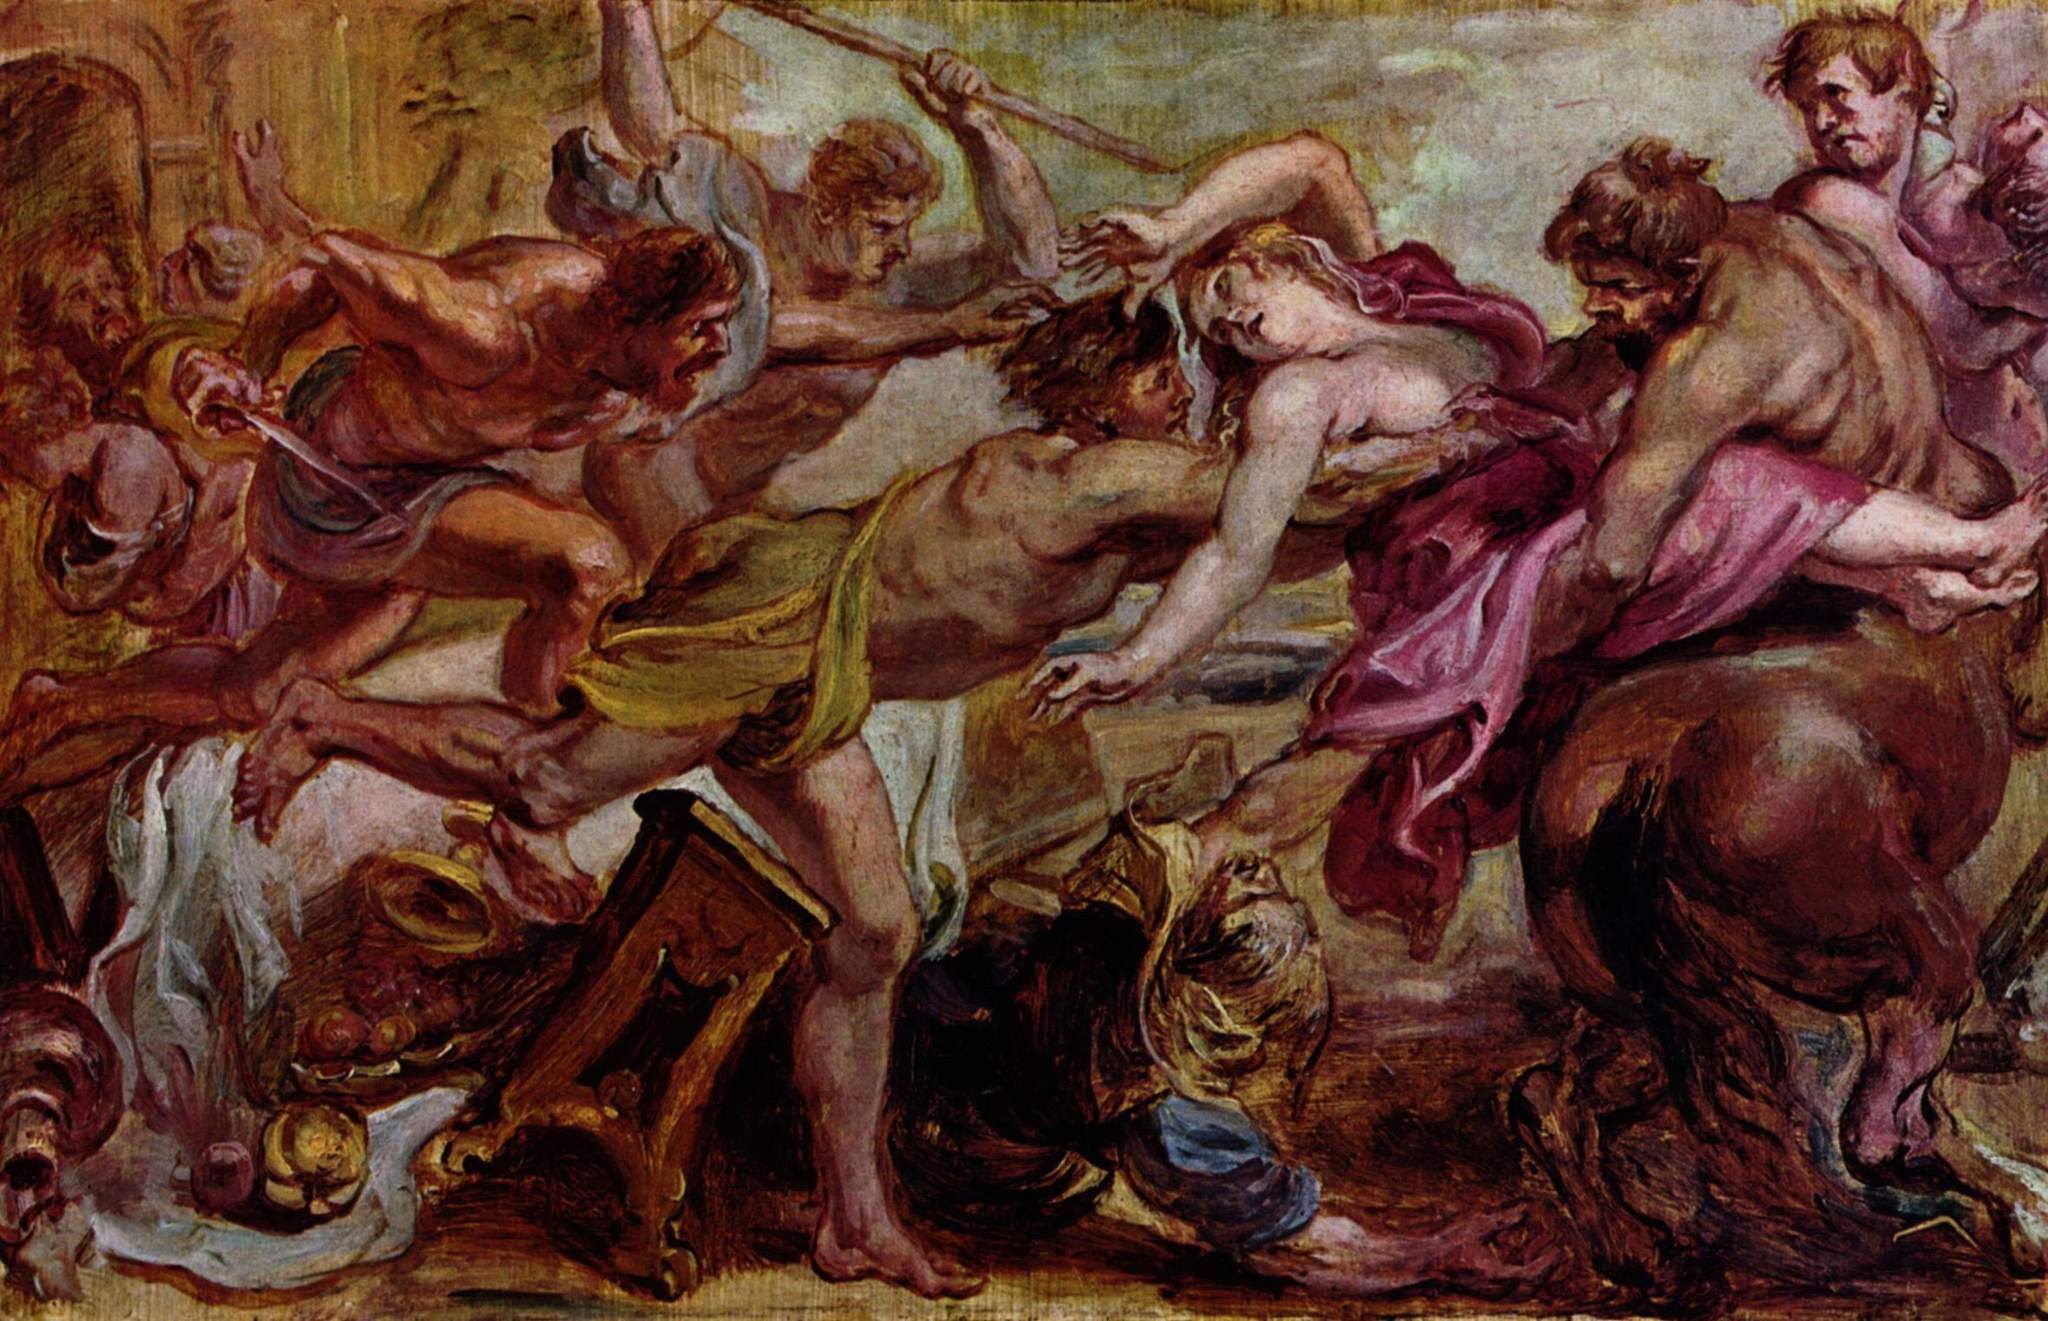 Abduction of Hippodamia Peter Paul Rubens  1637-1638